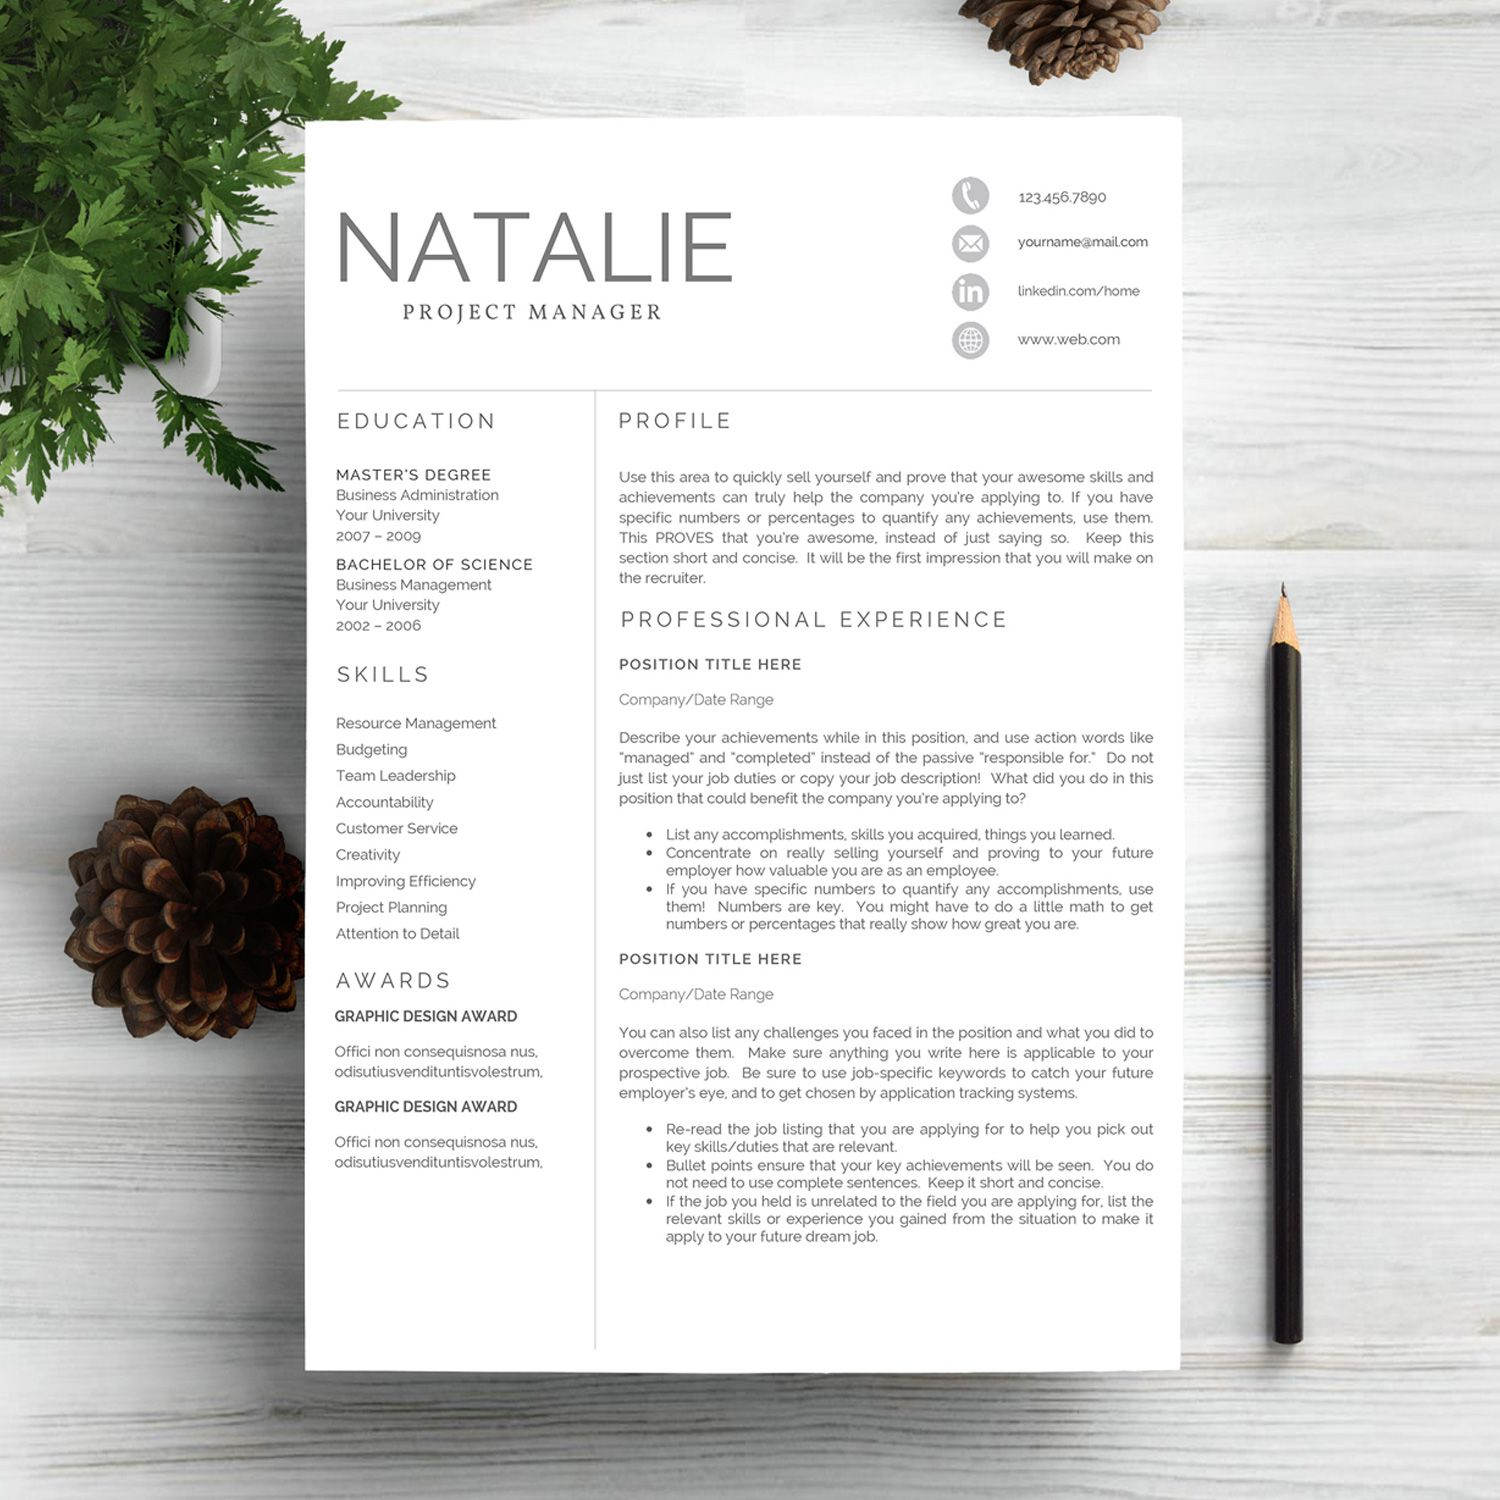 Professional Resume Template for Project Manager More